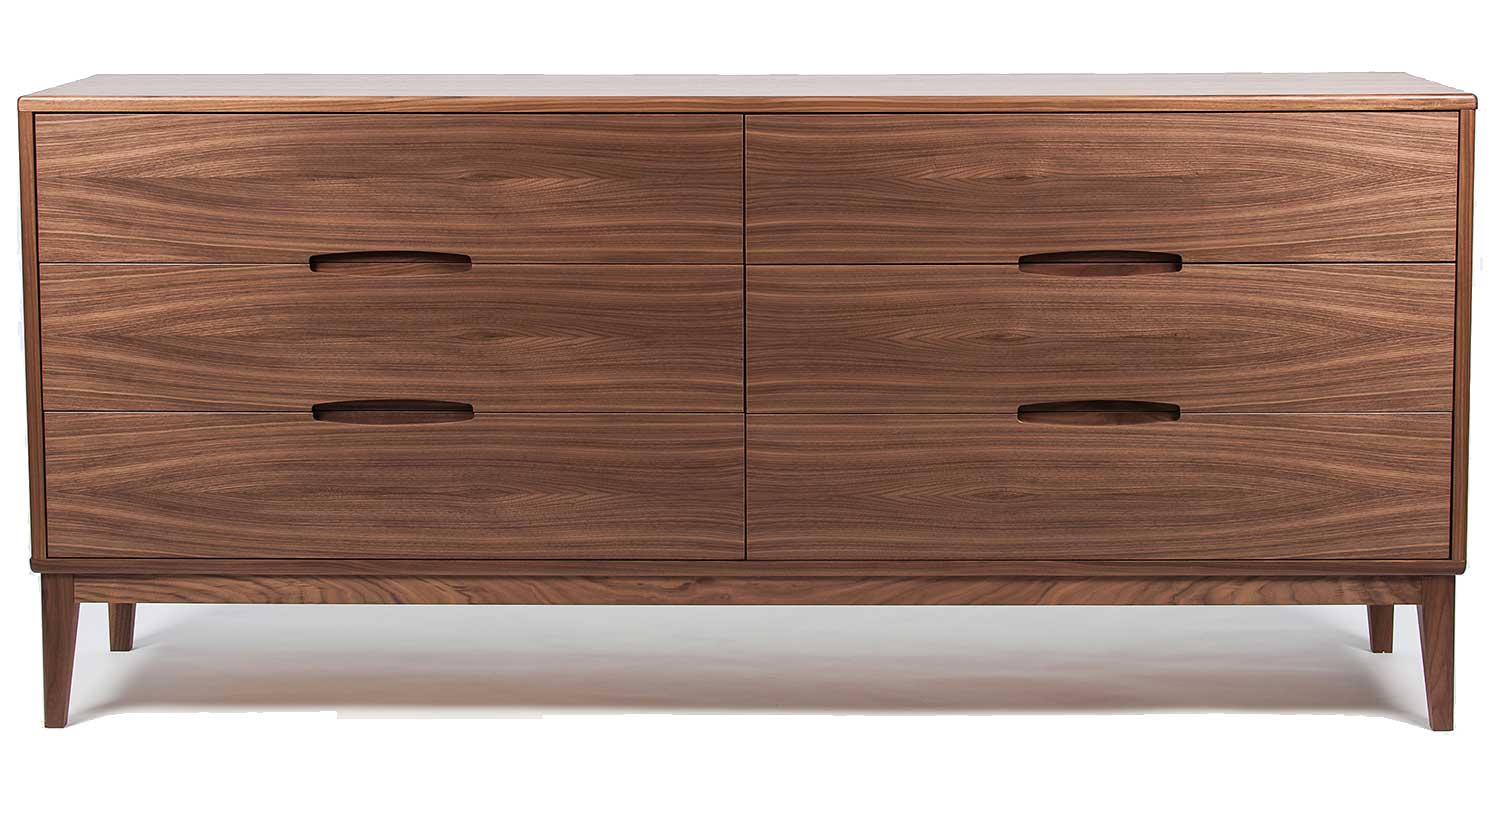 Circle Furniture - Leila Dresser | Contemporary Bedroom Furniture ...